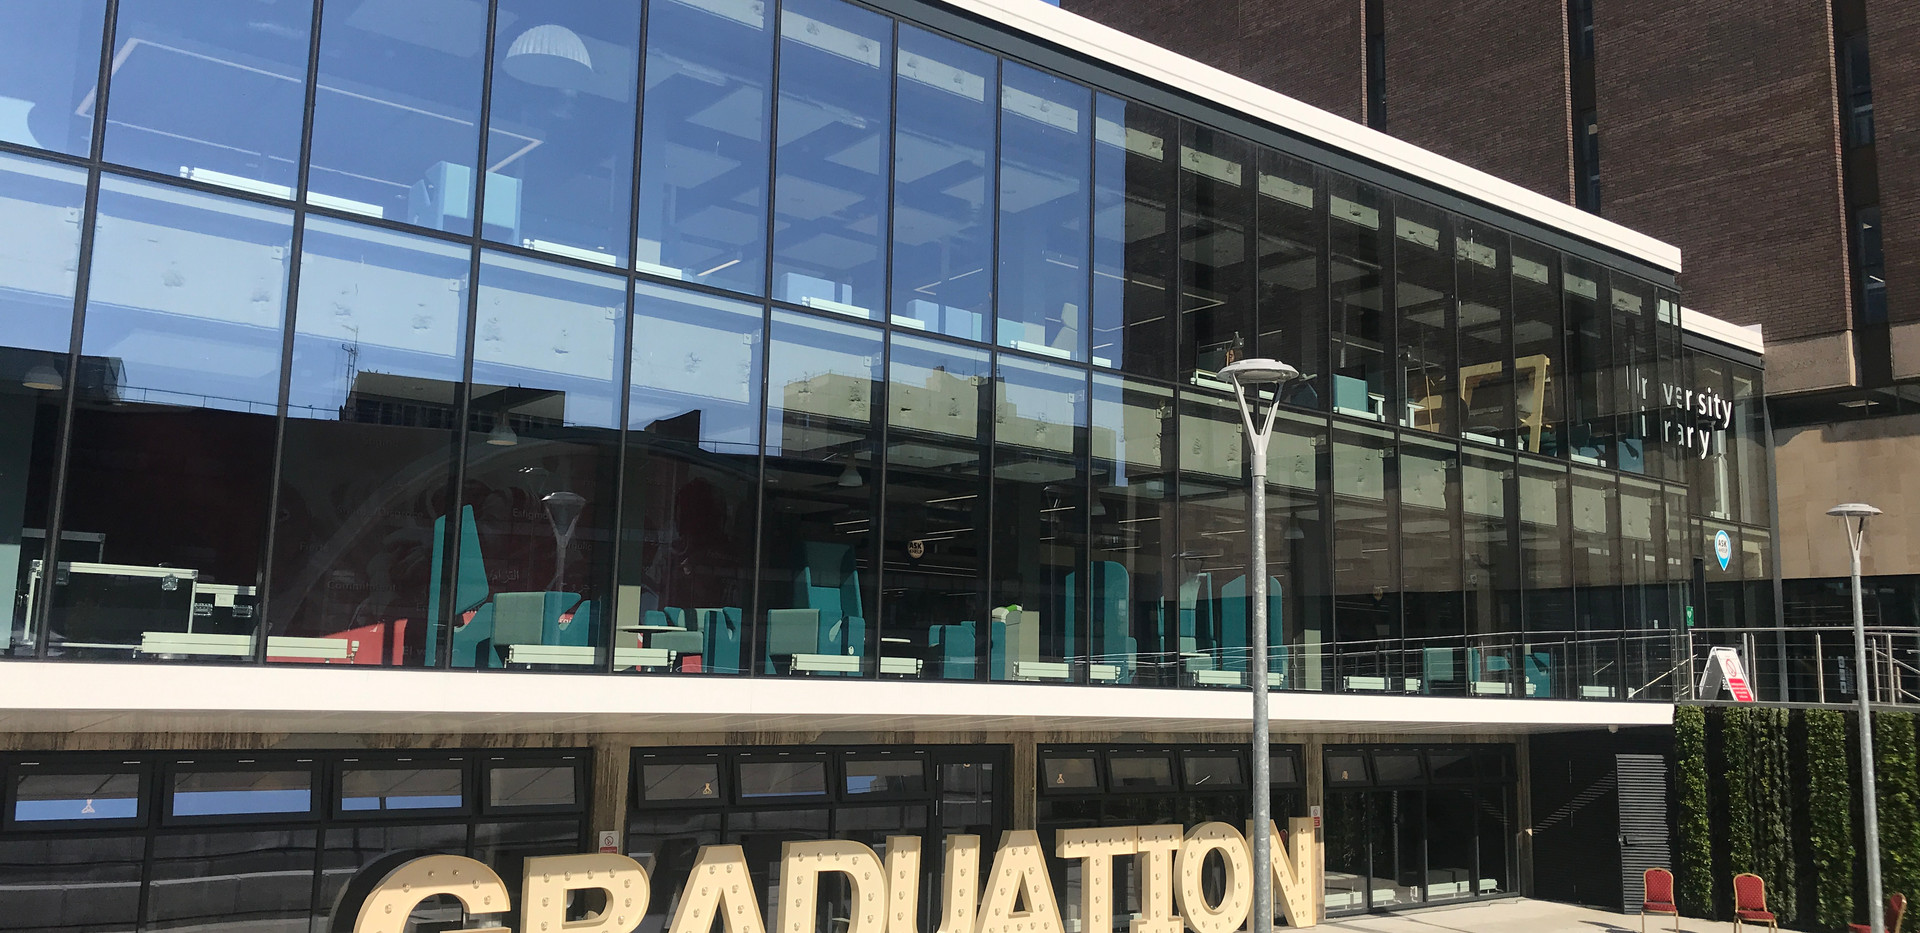 5ft GRADUATION letters at Northumbria University